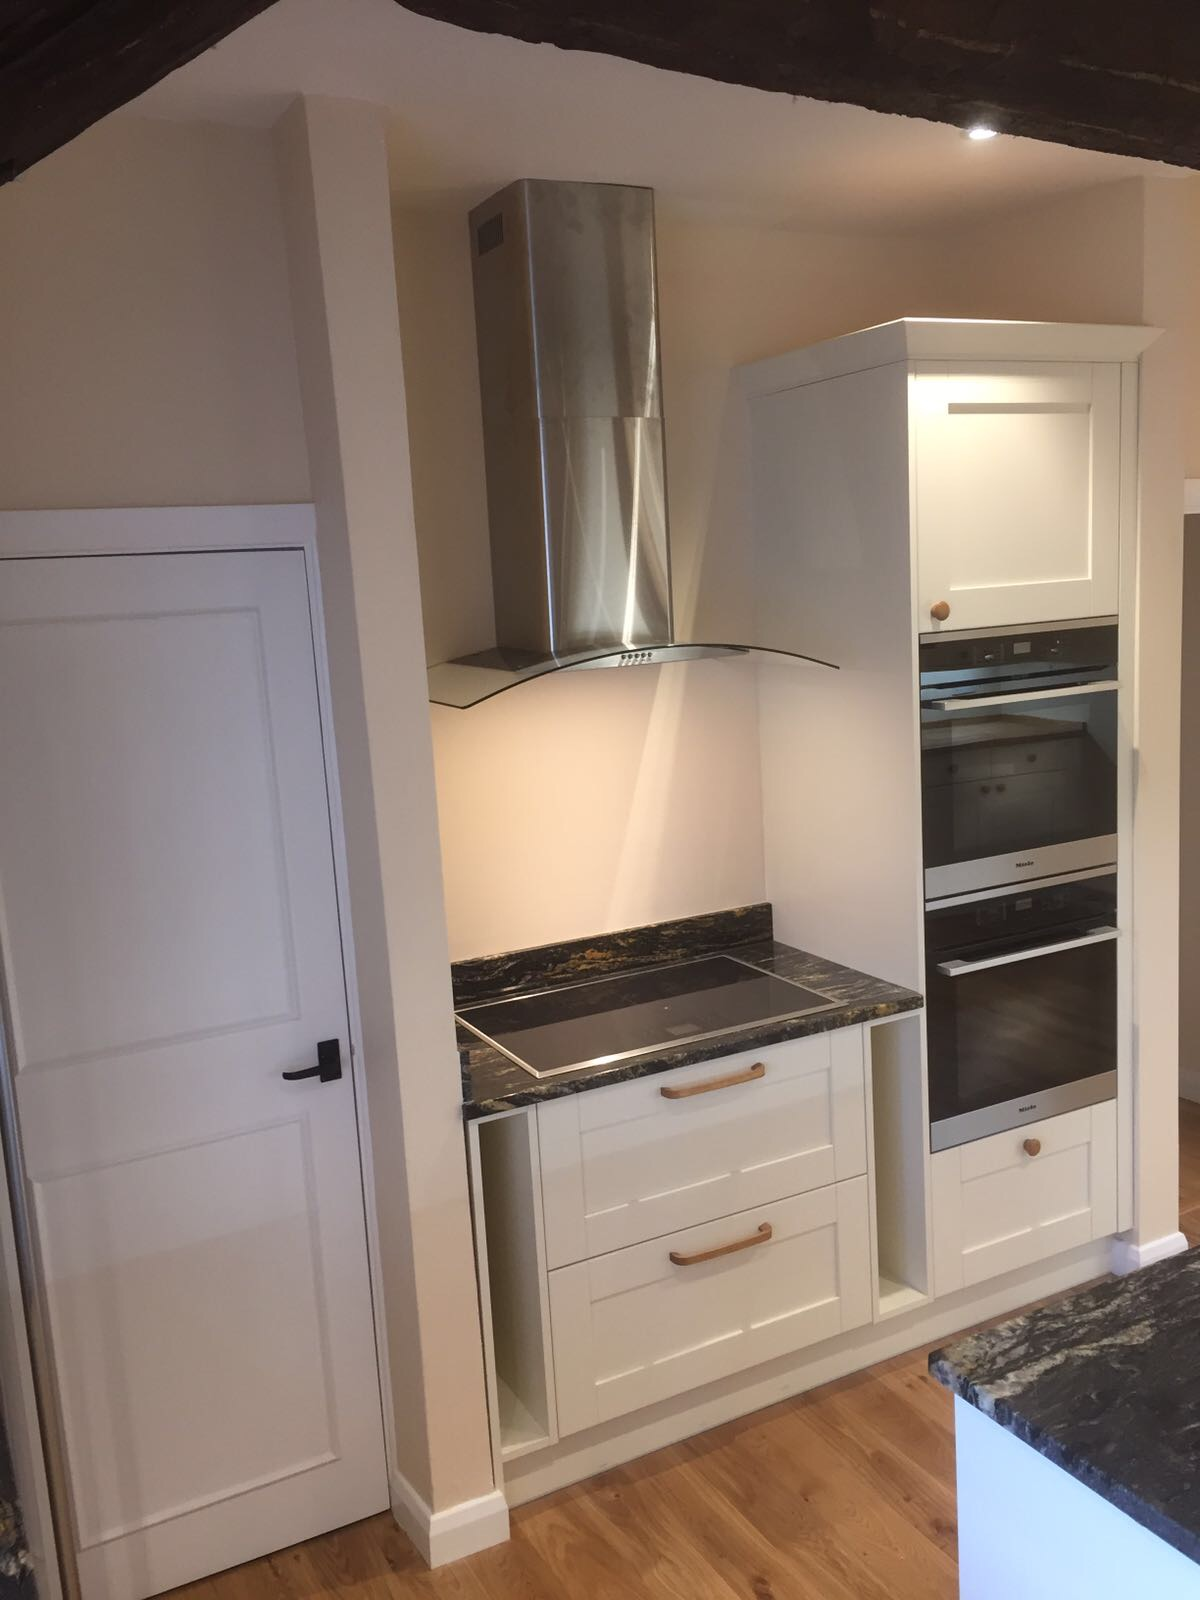 kitchen appliances pay monthly country lighting new and bespoke kitchens from sgs why not spread the cost with finance payments using our easy payment plan